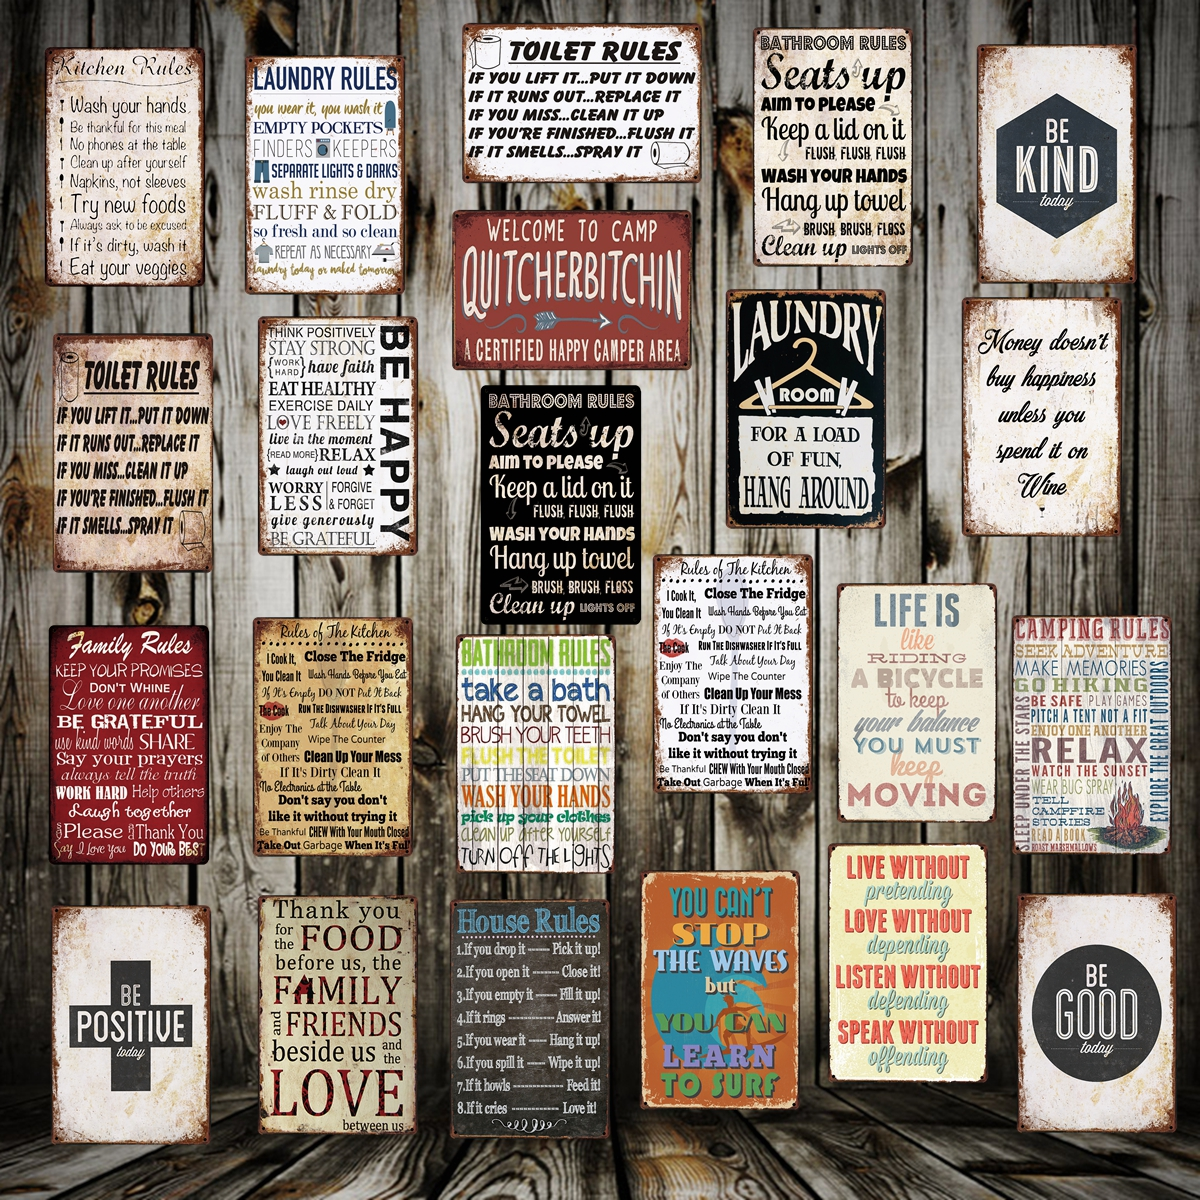 [ WellCraft ] TOILET KITCHEN Bathroom HOUSE LAUNDRY RULE Metal Sign Posters art Vintage Mural Painting Custom Decor LT-1742(China)